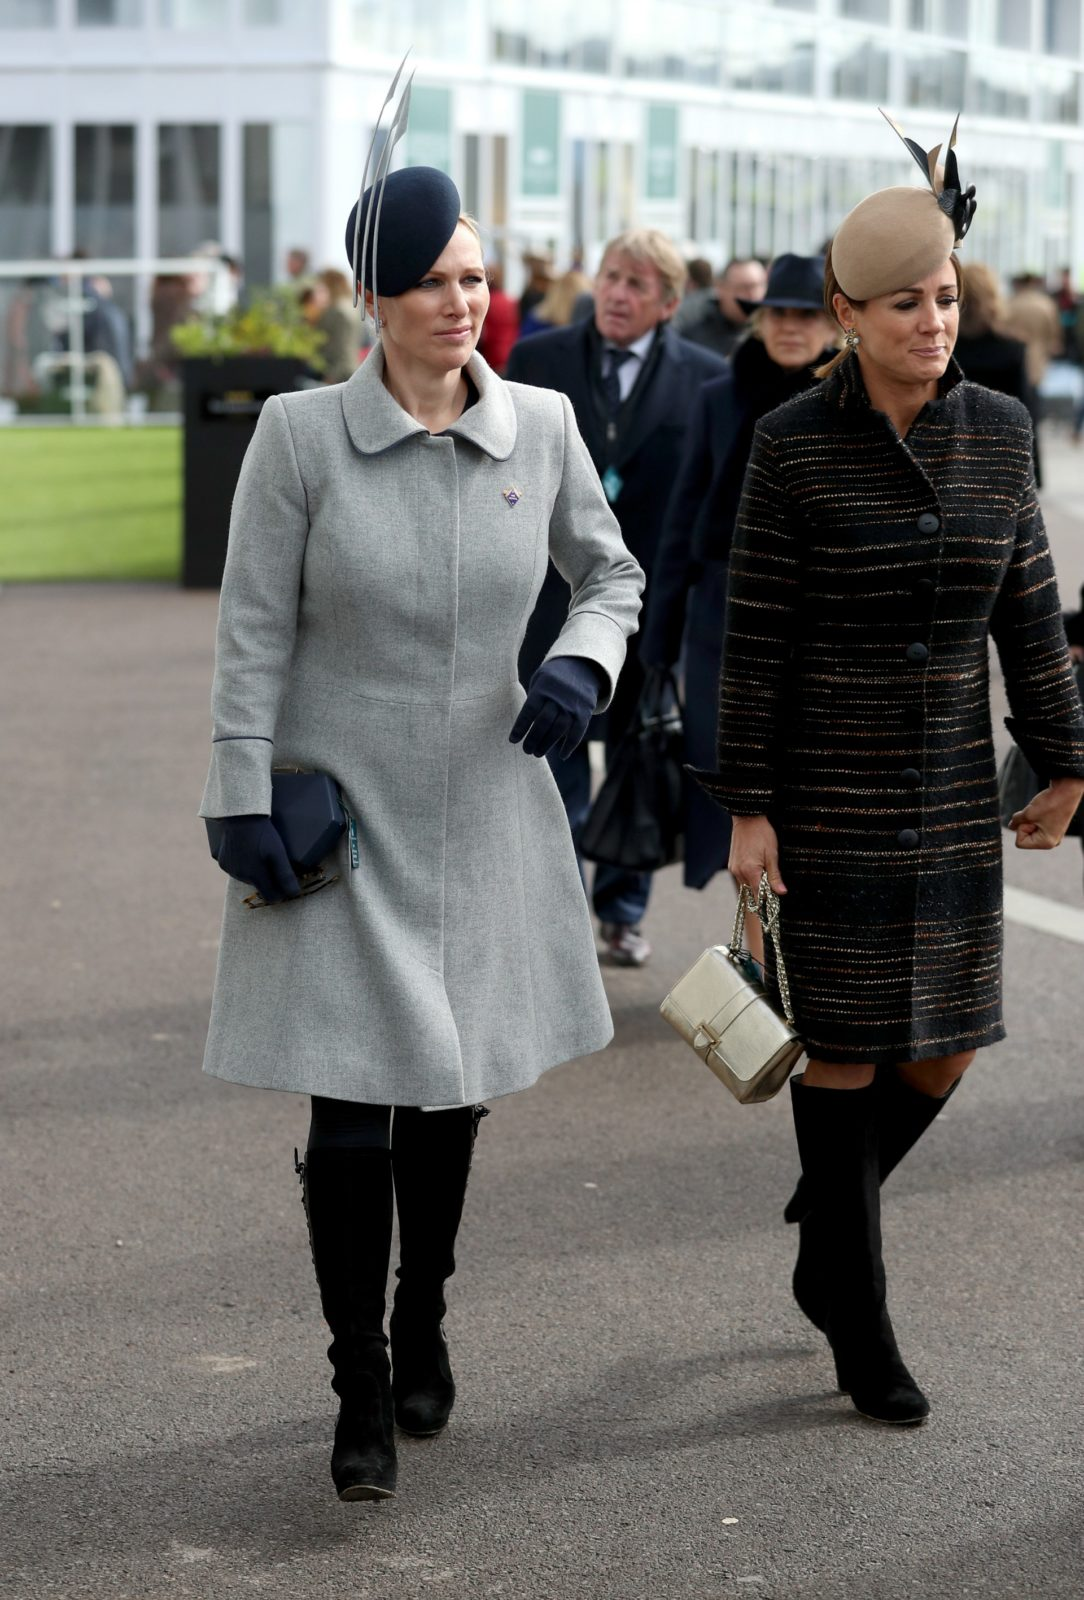 Zara Tindall rocked another stylish headpiece at the races in Cheltenham.